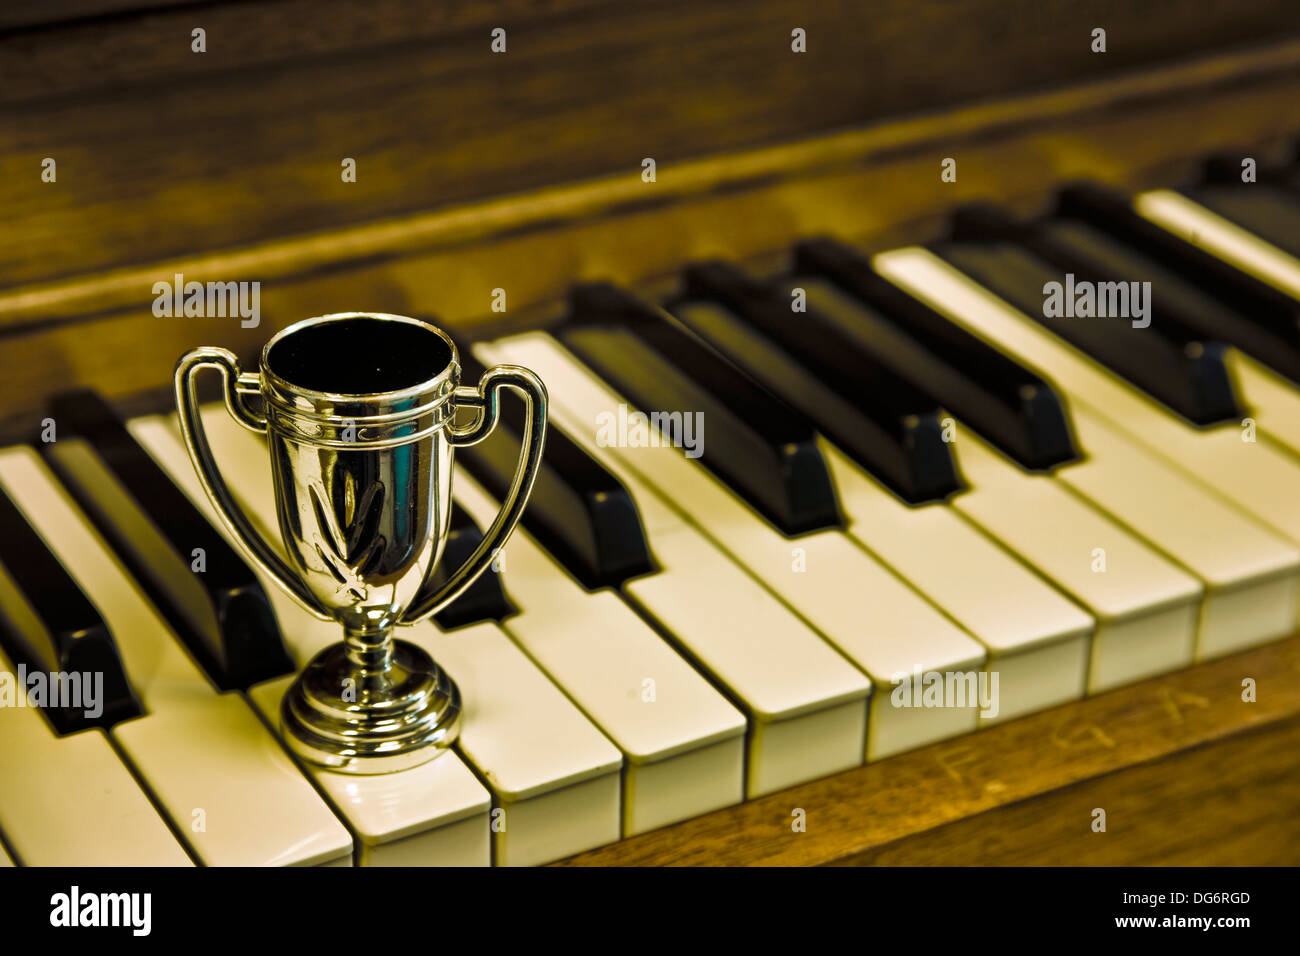 Small trophy cup on a piano keyboard Stock Photo: 61615805